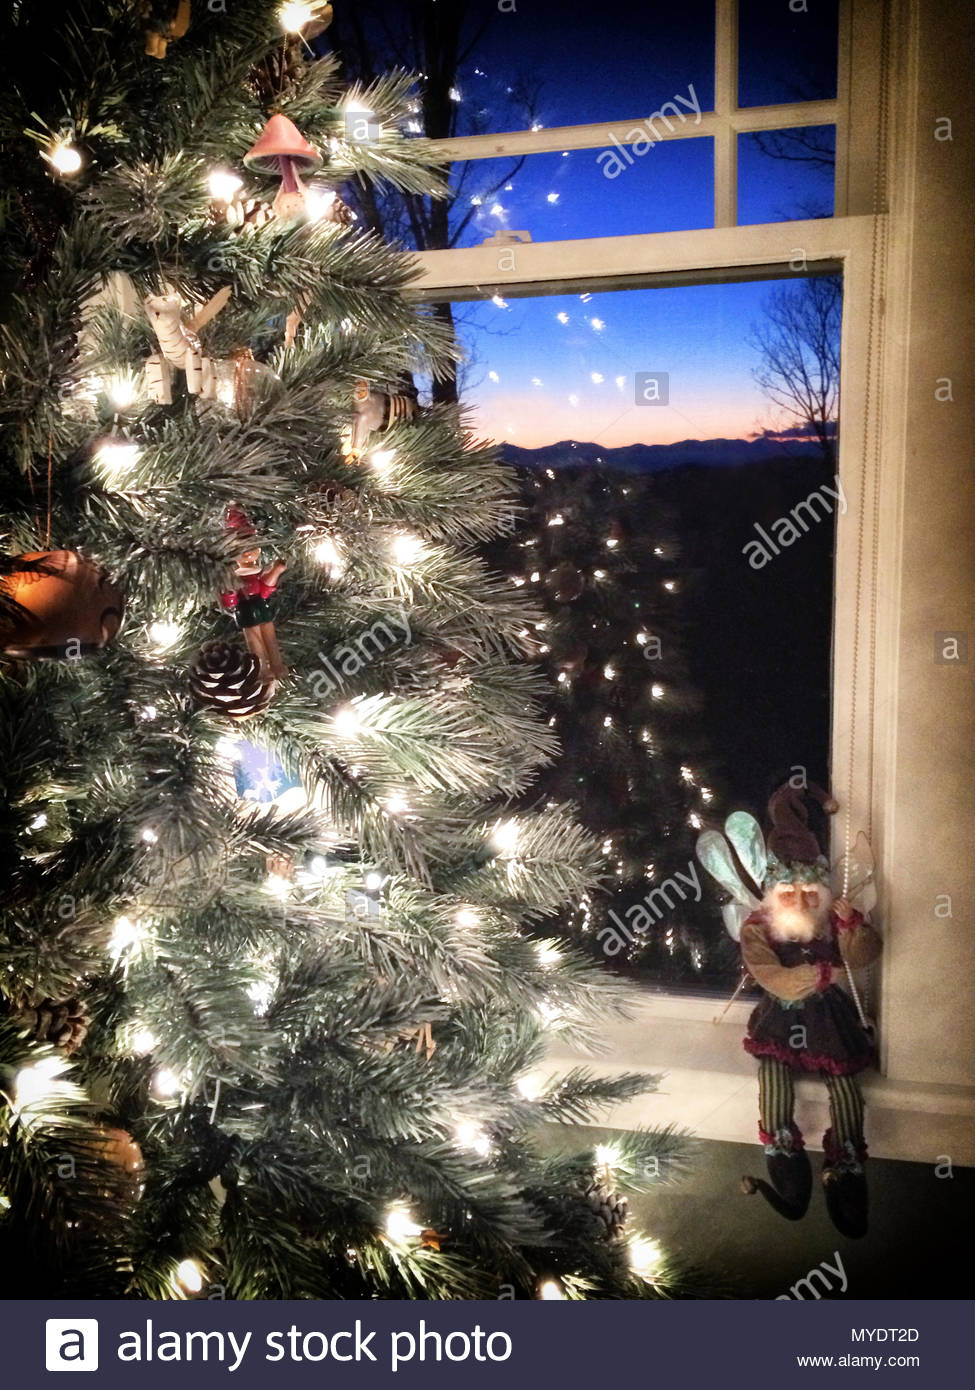 A fairy figurine sits by a Christmas tree whose lights are reflected in a window at dusk. - Stock Image